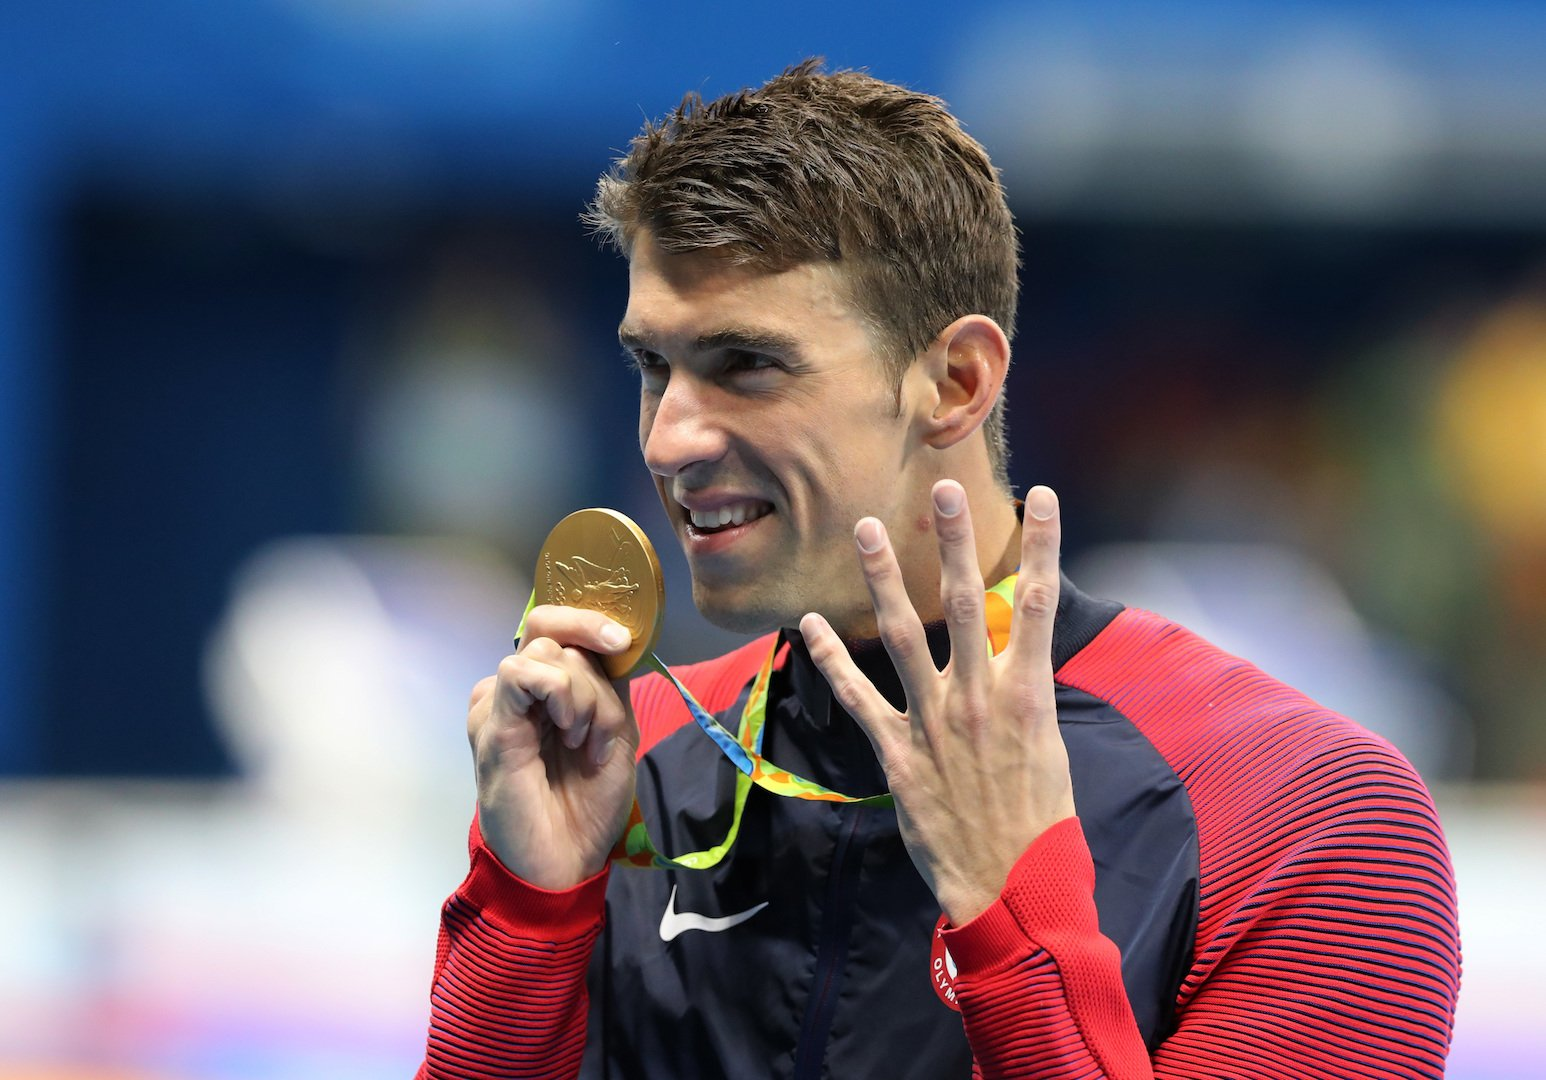 Michael phelps olympics photos Michael PHELPS - Olympic Swimmer Medalist USA - Olympic. org